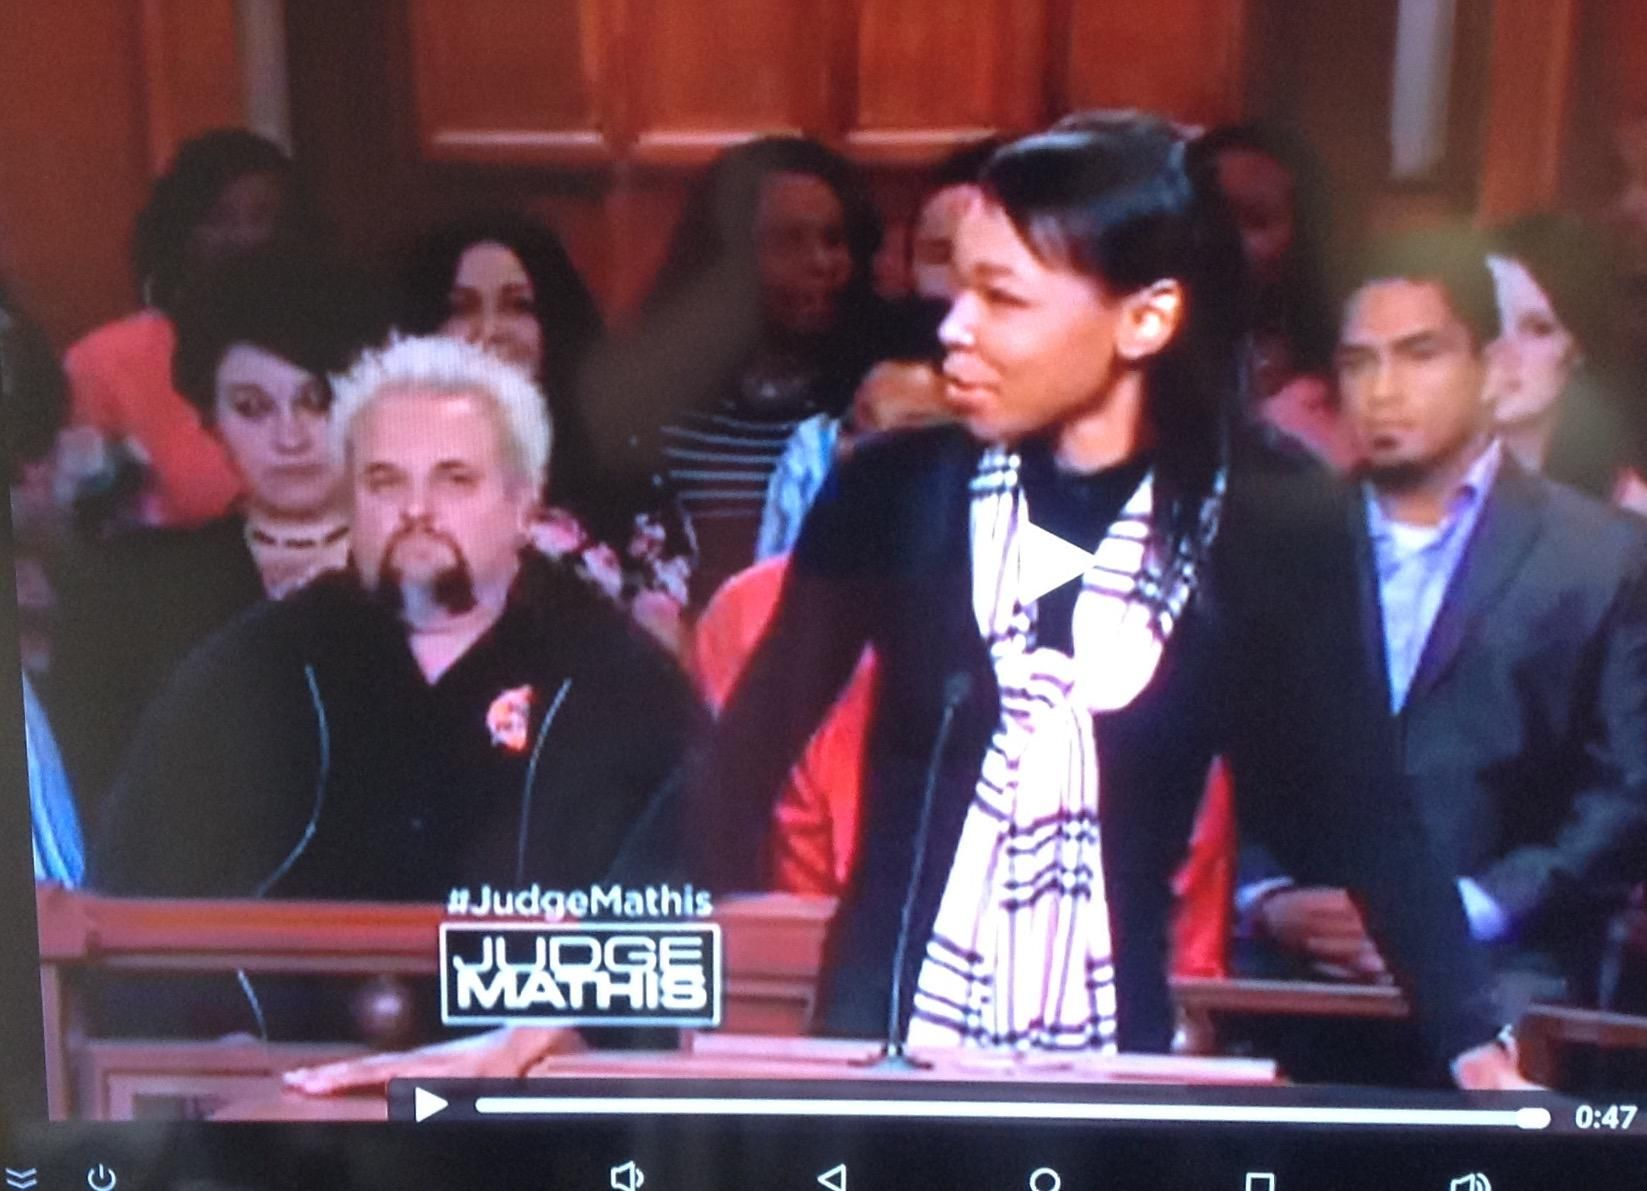 Looks like Guy Fierie likes hanging out at the Judge Mathis show on his down time.